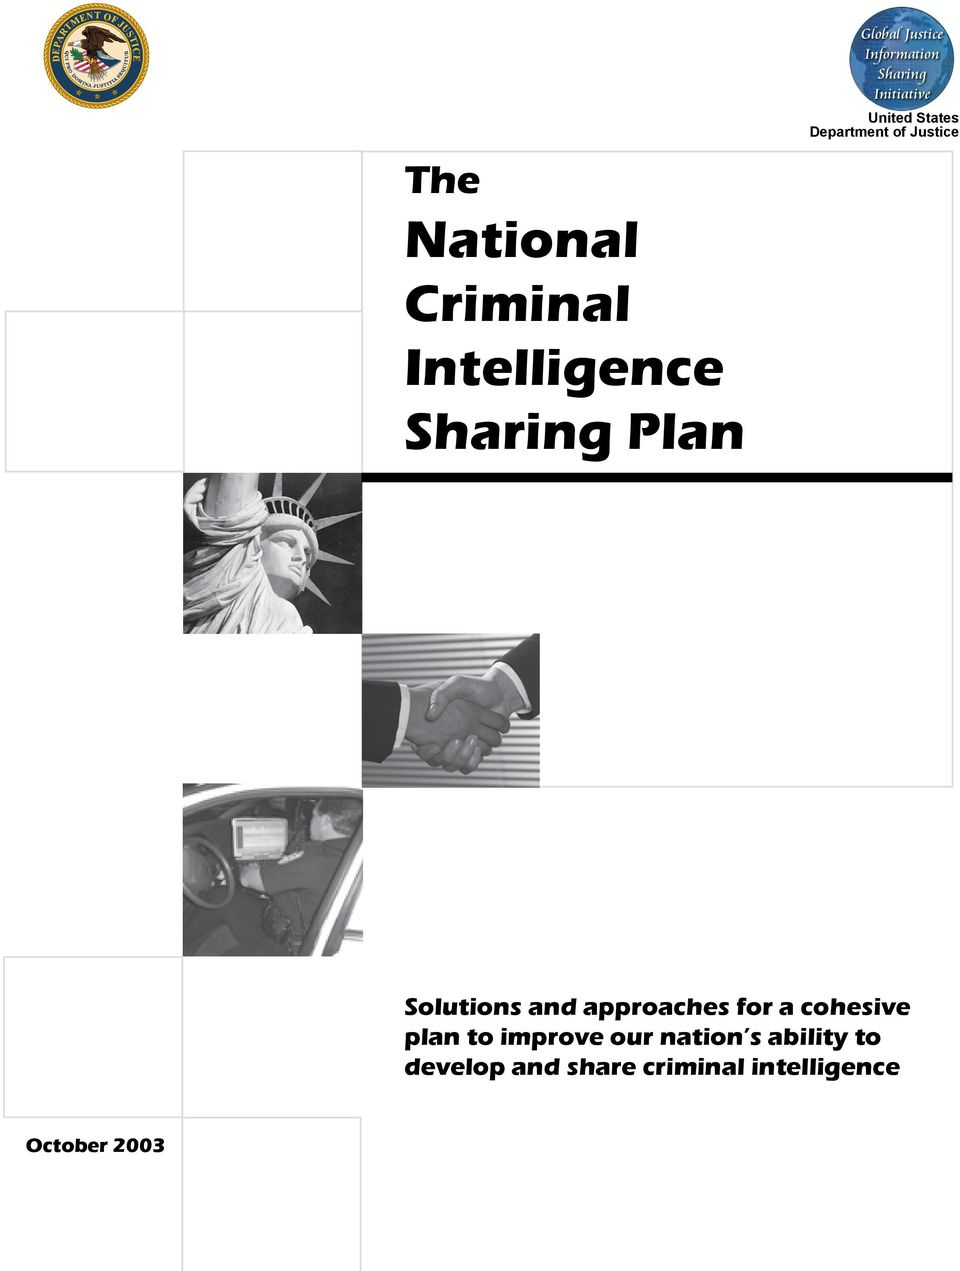 Criminal Intelligence Sharing Plan Global Justice Information Sharing Initiative